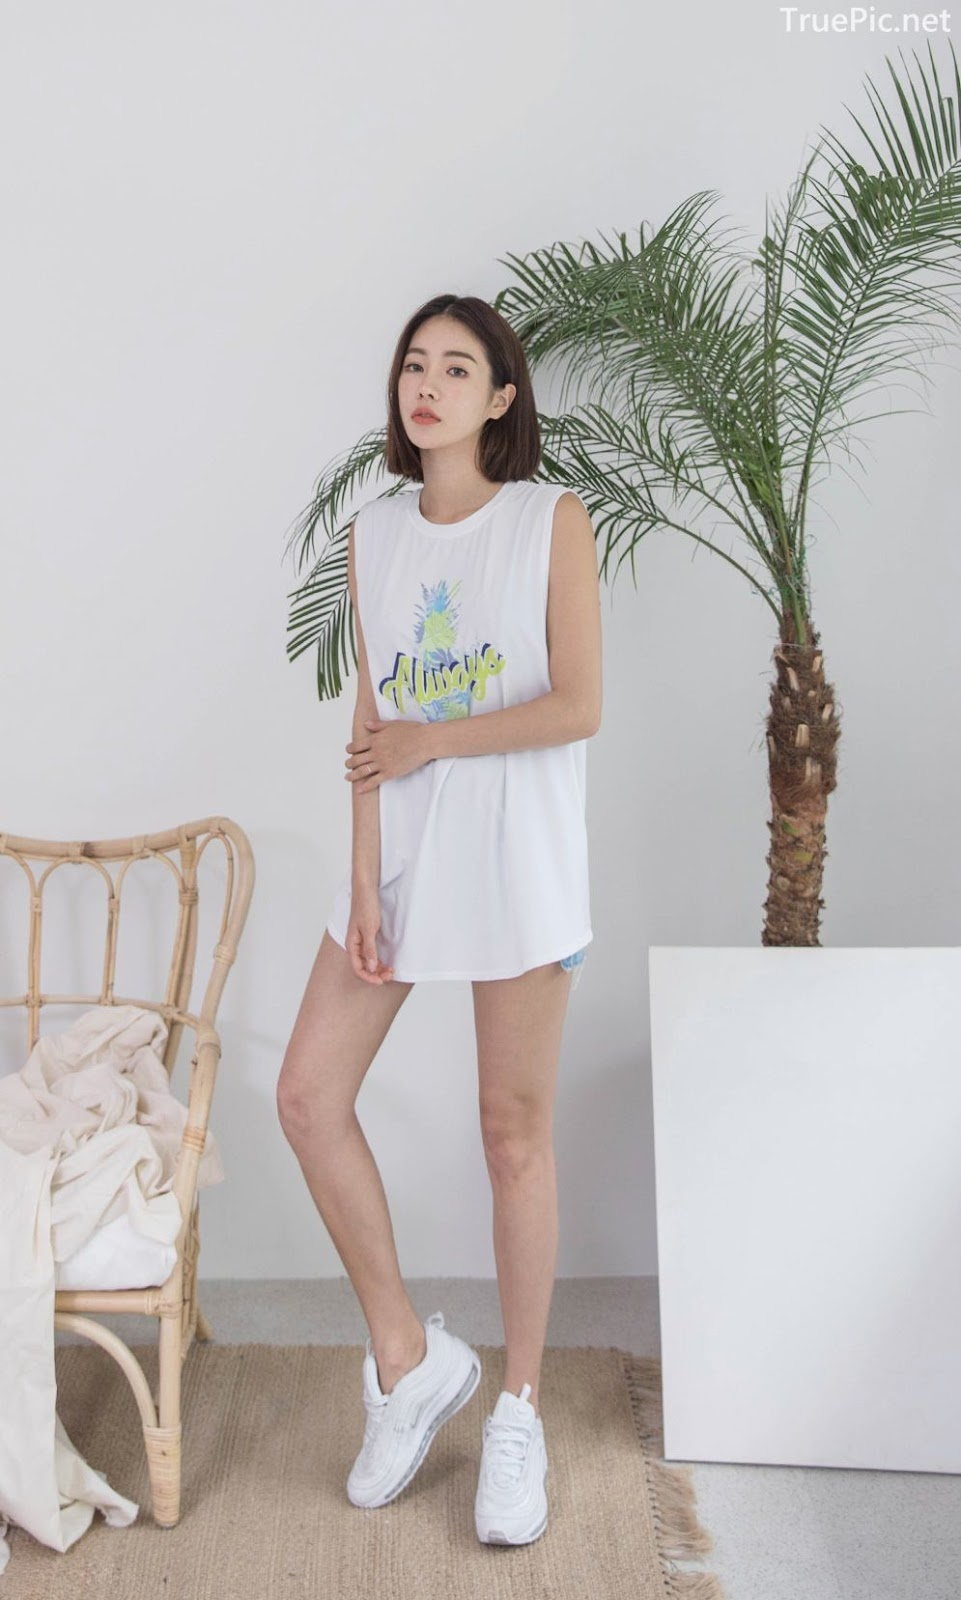 Korean model and fashion - An Seo Rin - Summer personality clothing for young girls - Picture 2